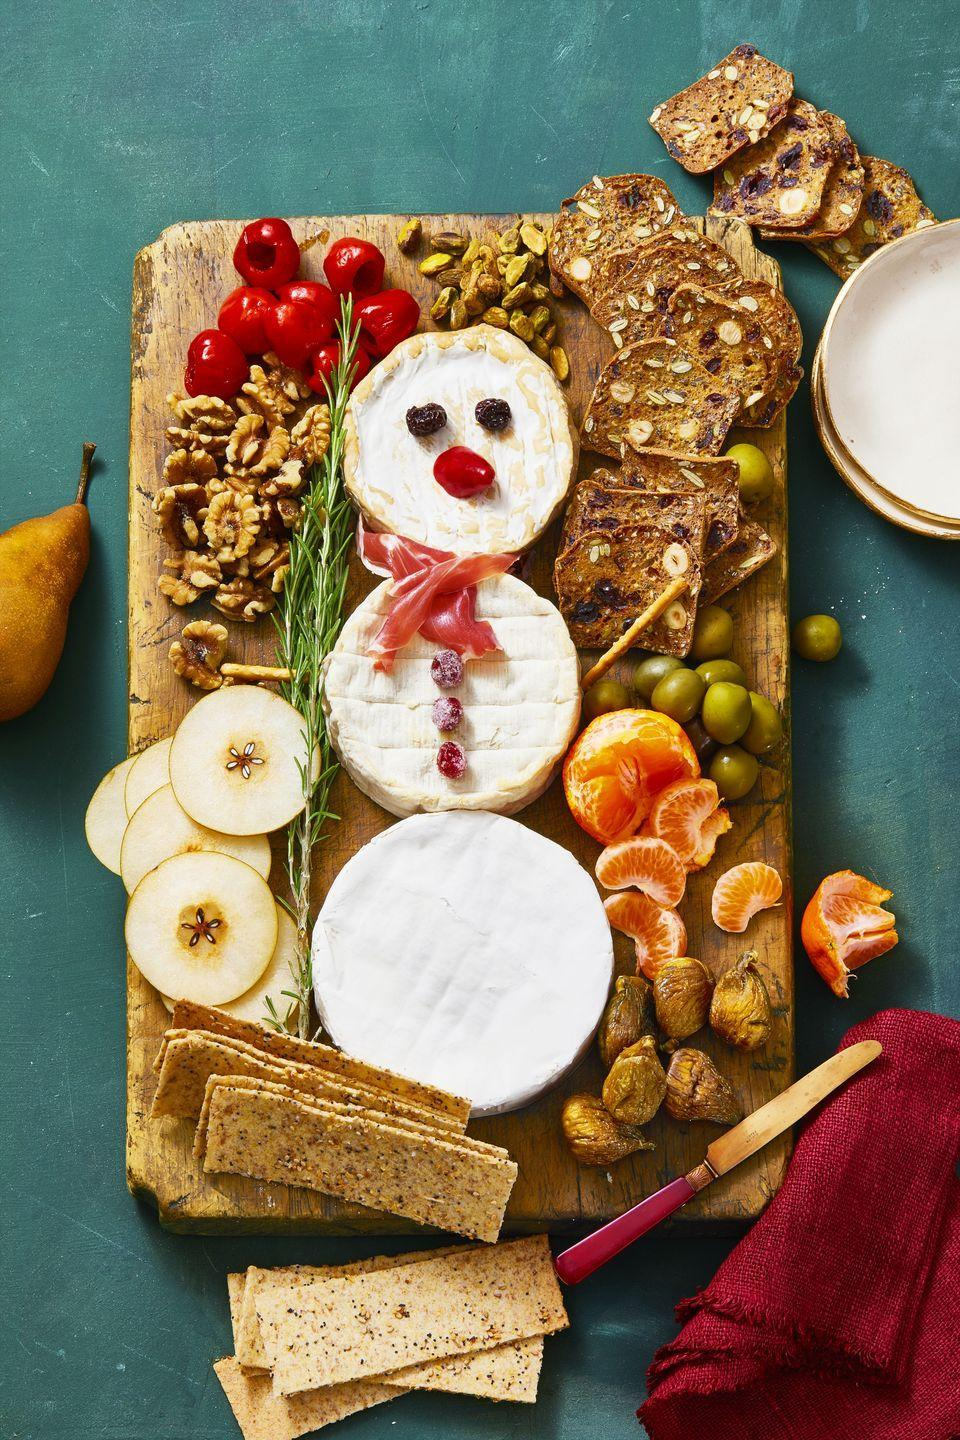 <p>To recreate this adorable holiday app, you'll need three cheese wheels, prosciutto for the scarf, sugared cranberry buttons, raisin eyes and a chile pepper nose. So easy, and so cute!</p>